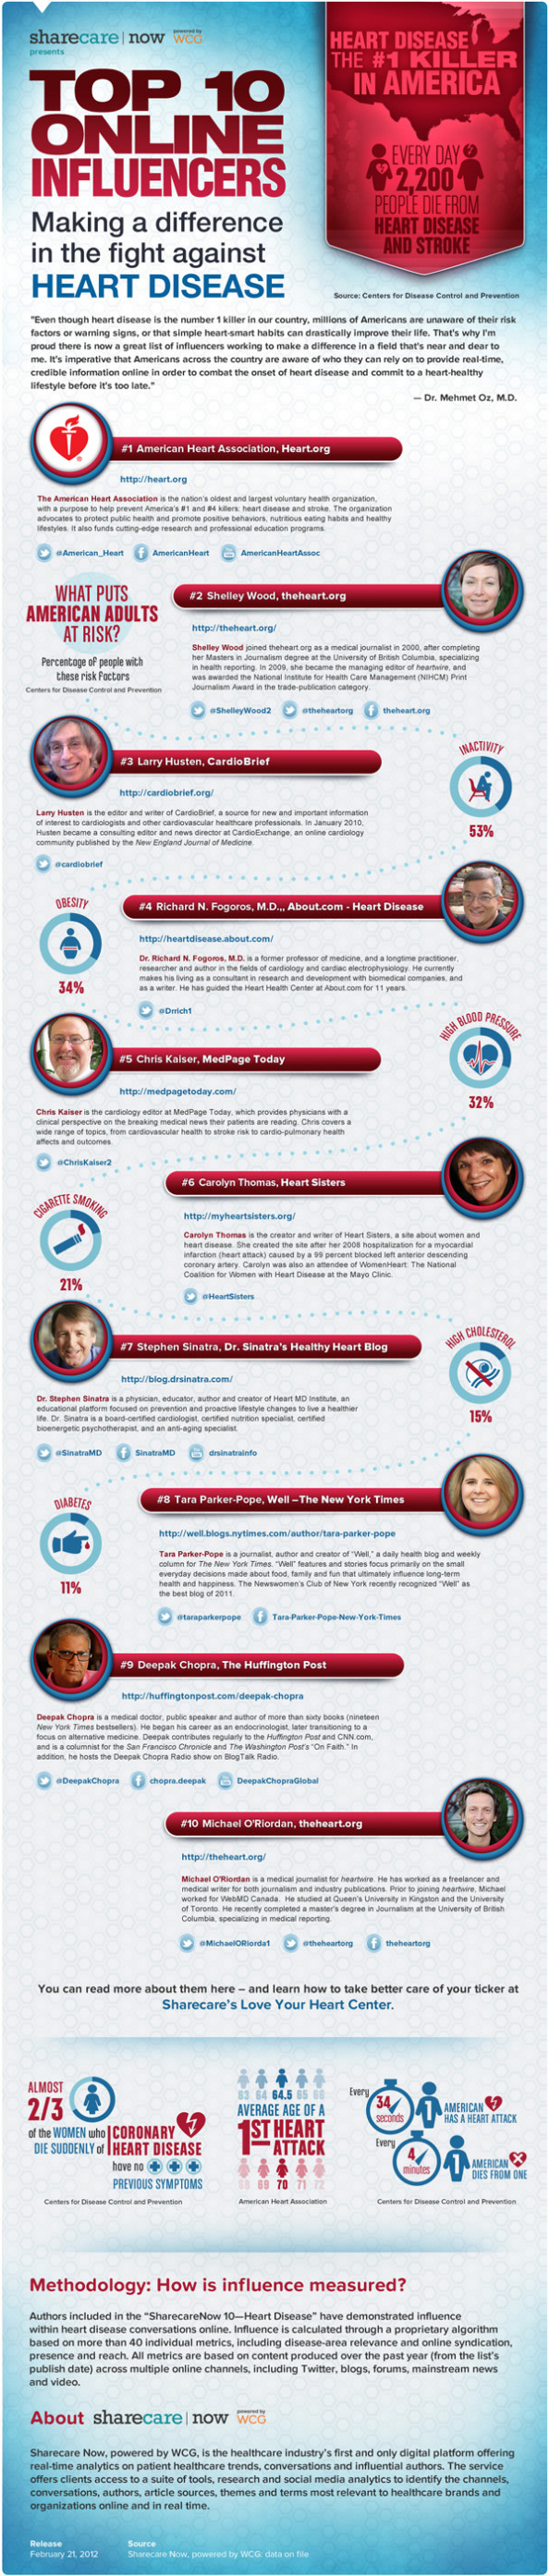 Top 10 Online Influencers in Fighting Heart Diseases Infographic